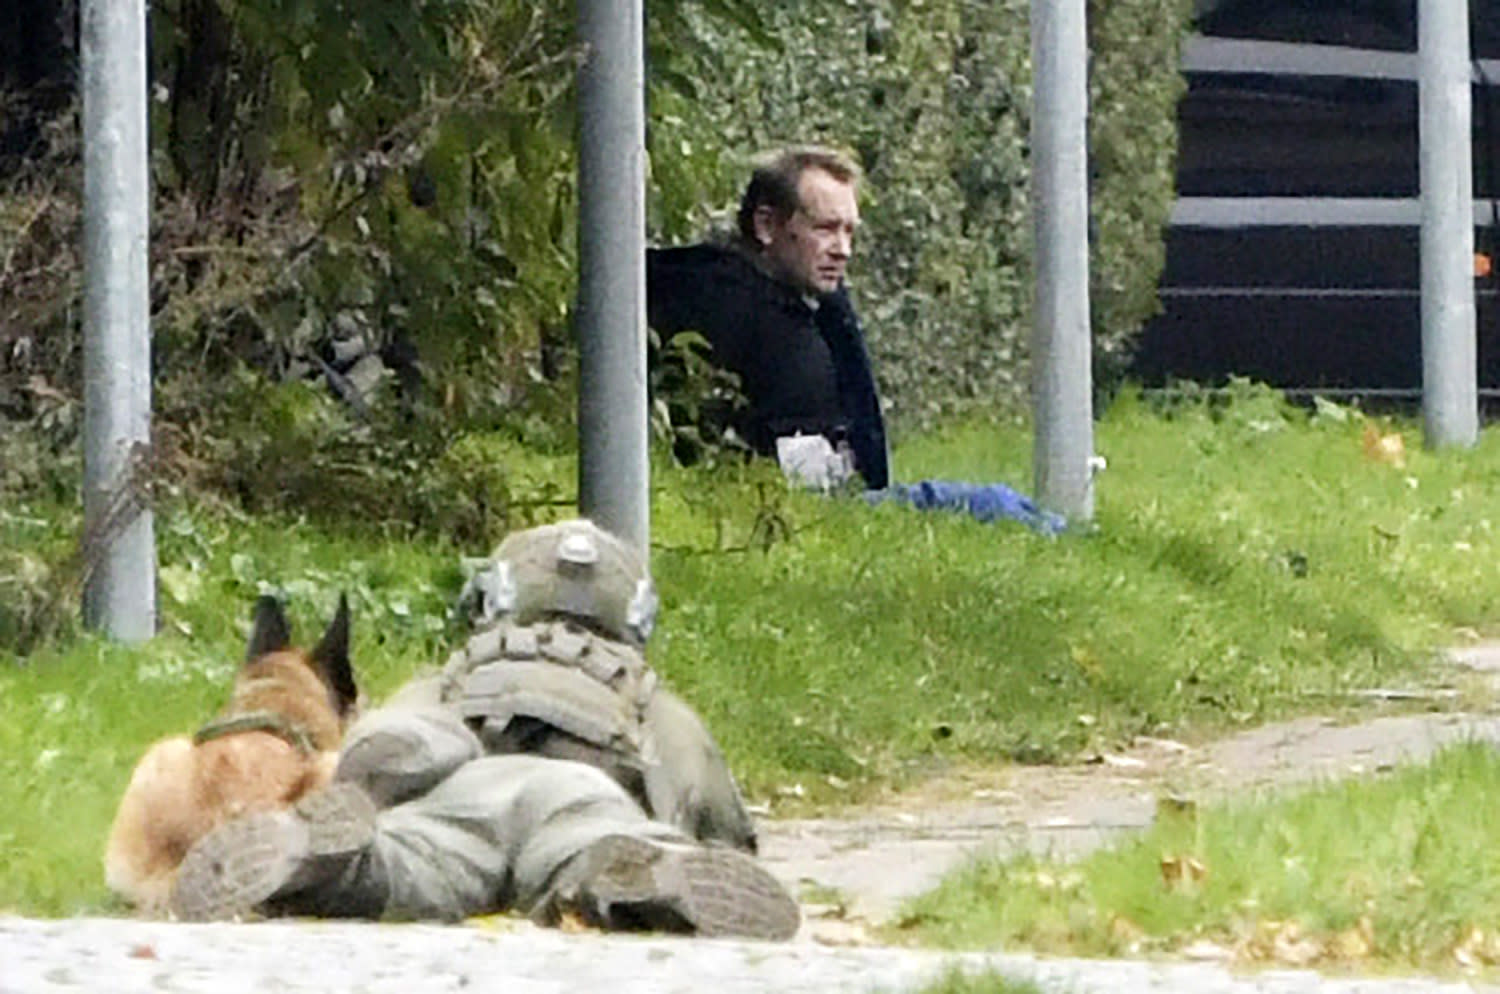 Danish sub killer recaptured after attempted prison escape